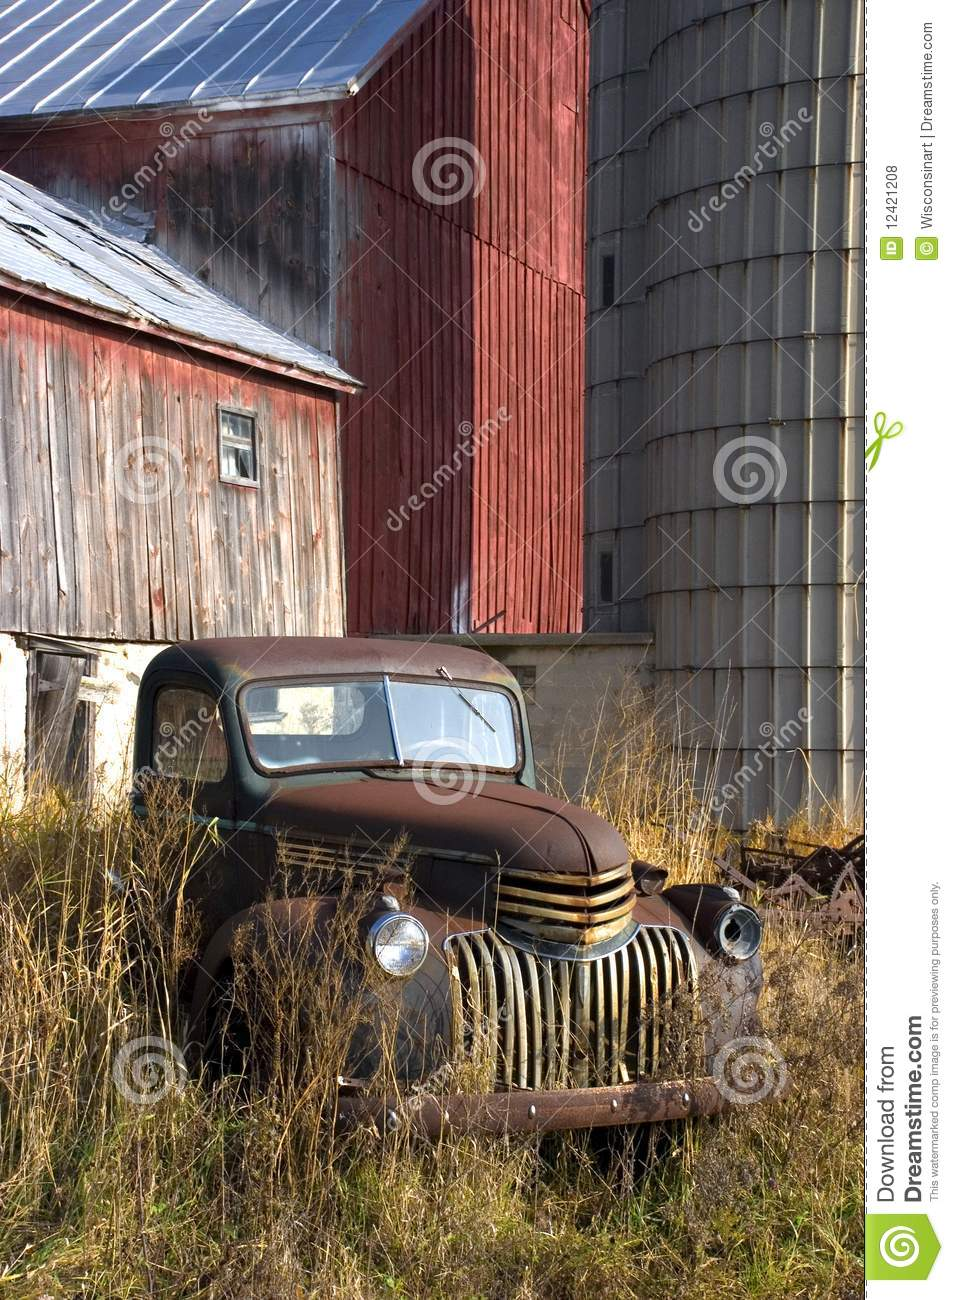 2 318 Vintage Old Farm Truck Photos Free Royalty Free Stock Photos From Dreamstime